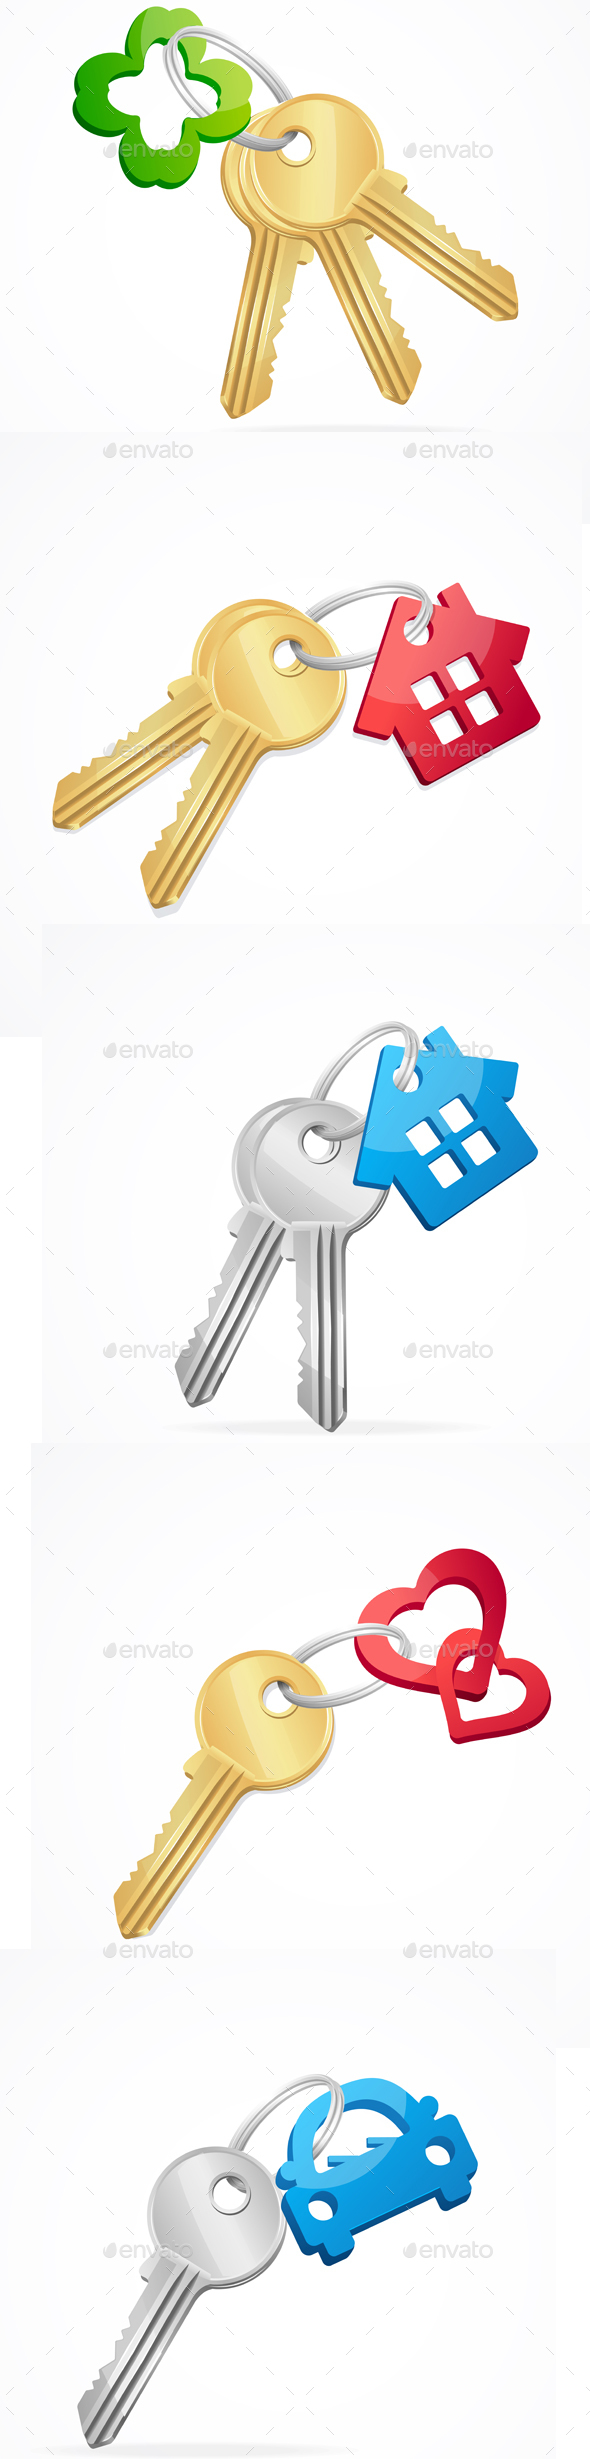 Keys and Key Chain Set. Vector - Objects Vectors